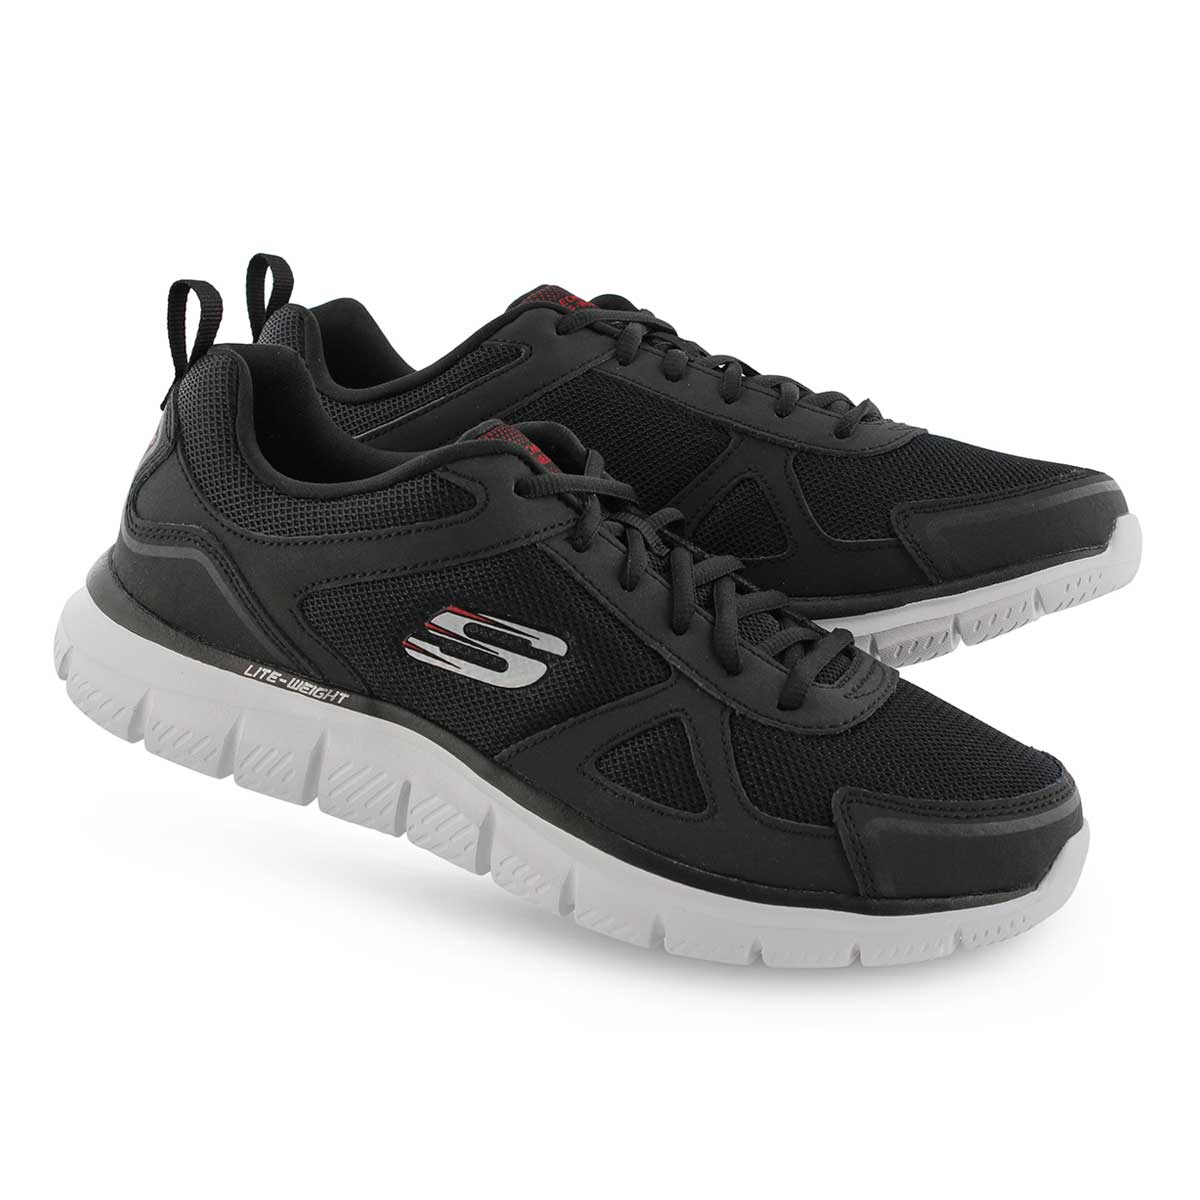 Mns Track Scloric blk/rd lace up snkr